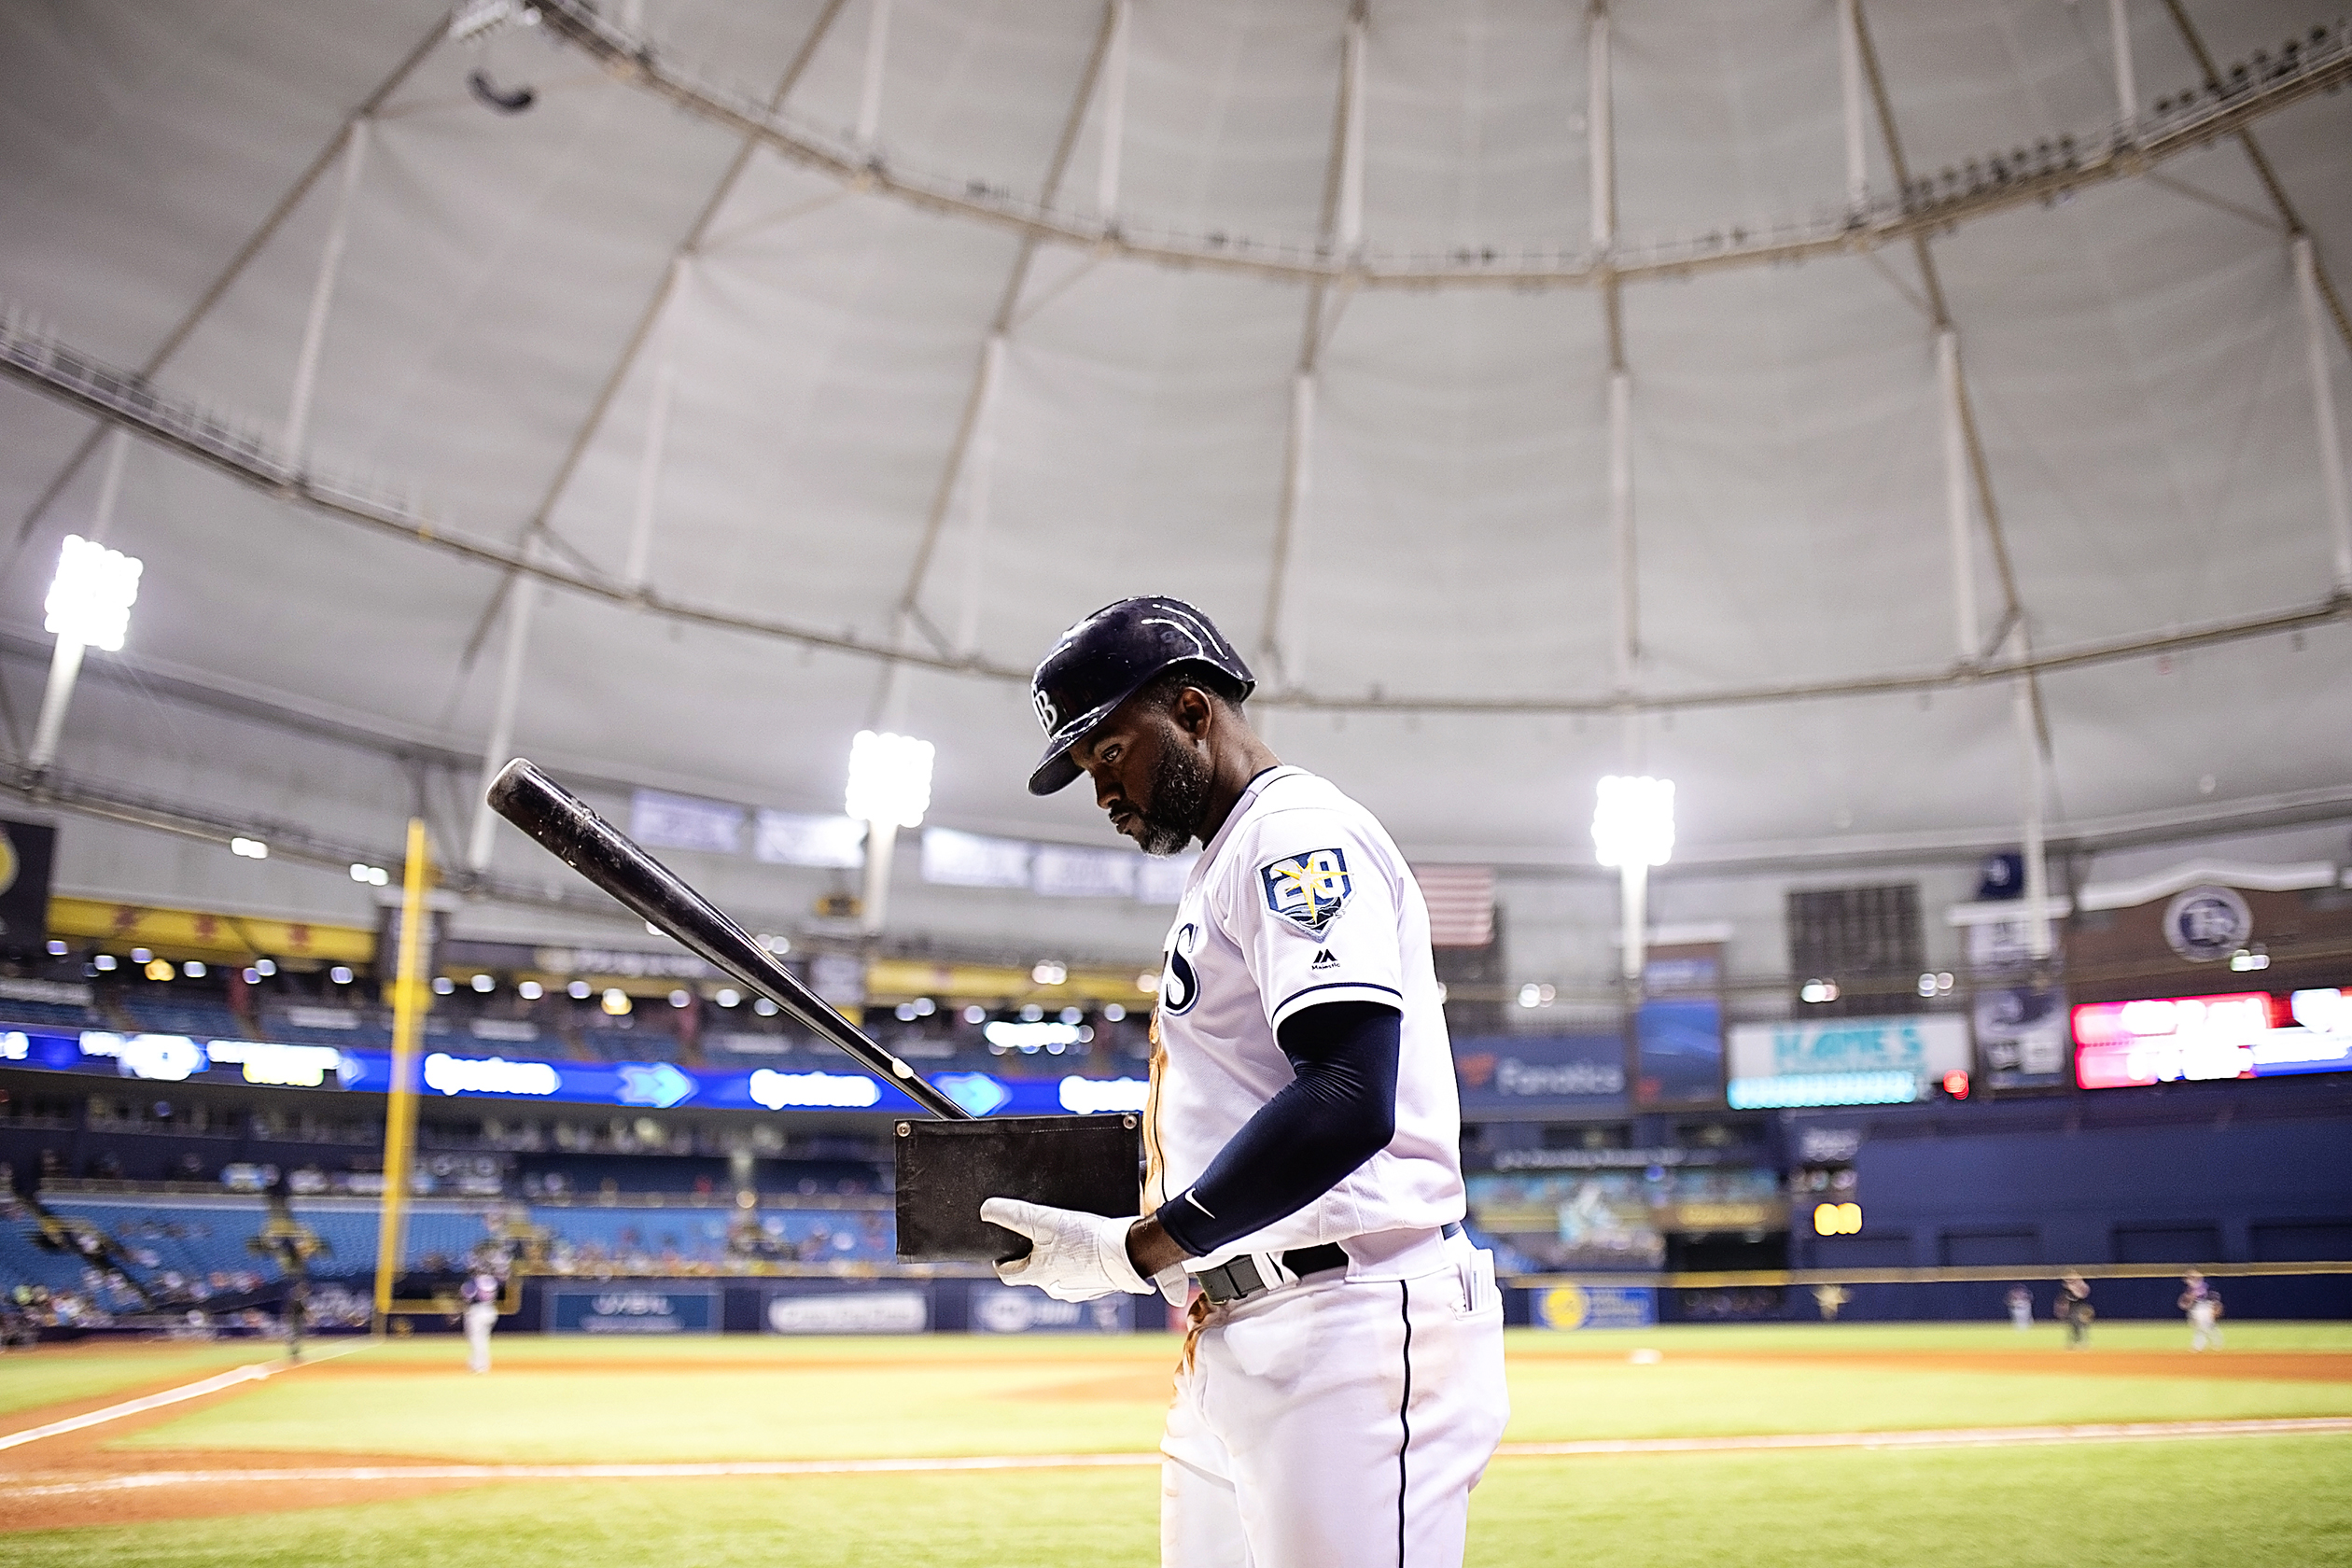 Span knocked in two with a home run./CARMEN MANDATO